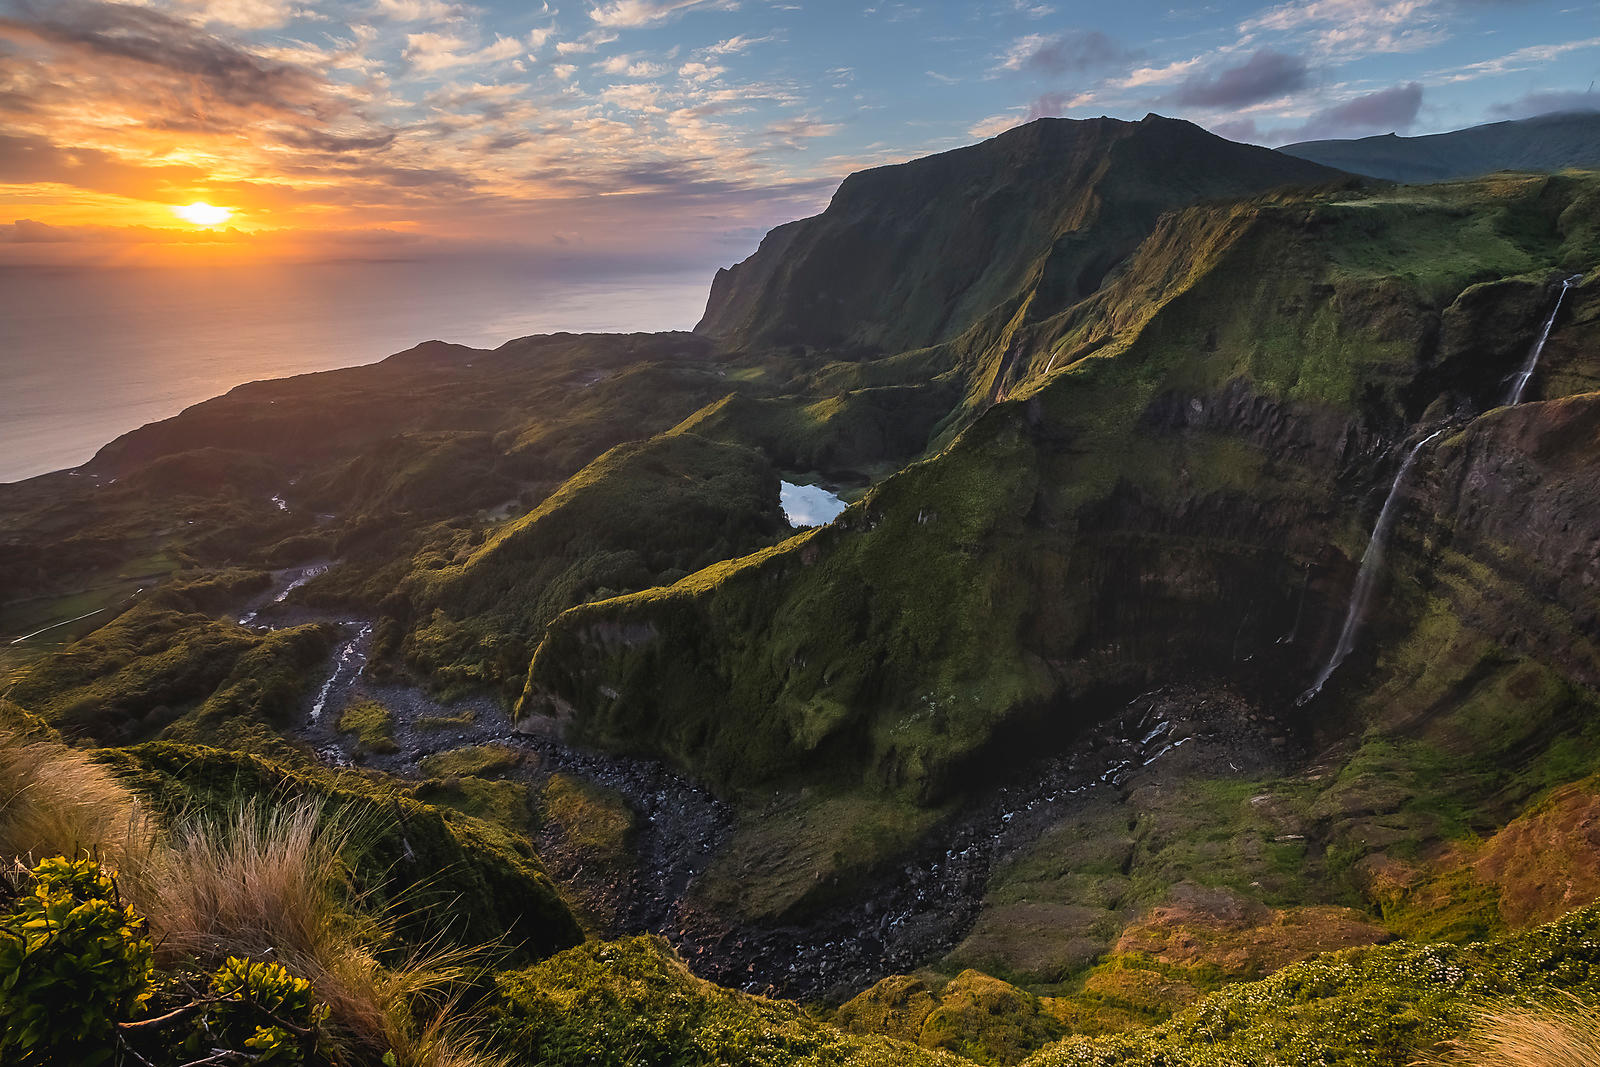 Sunset over Alagoinha, in Flores island, Azores